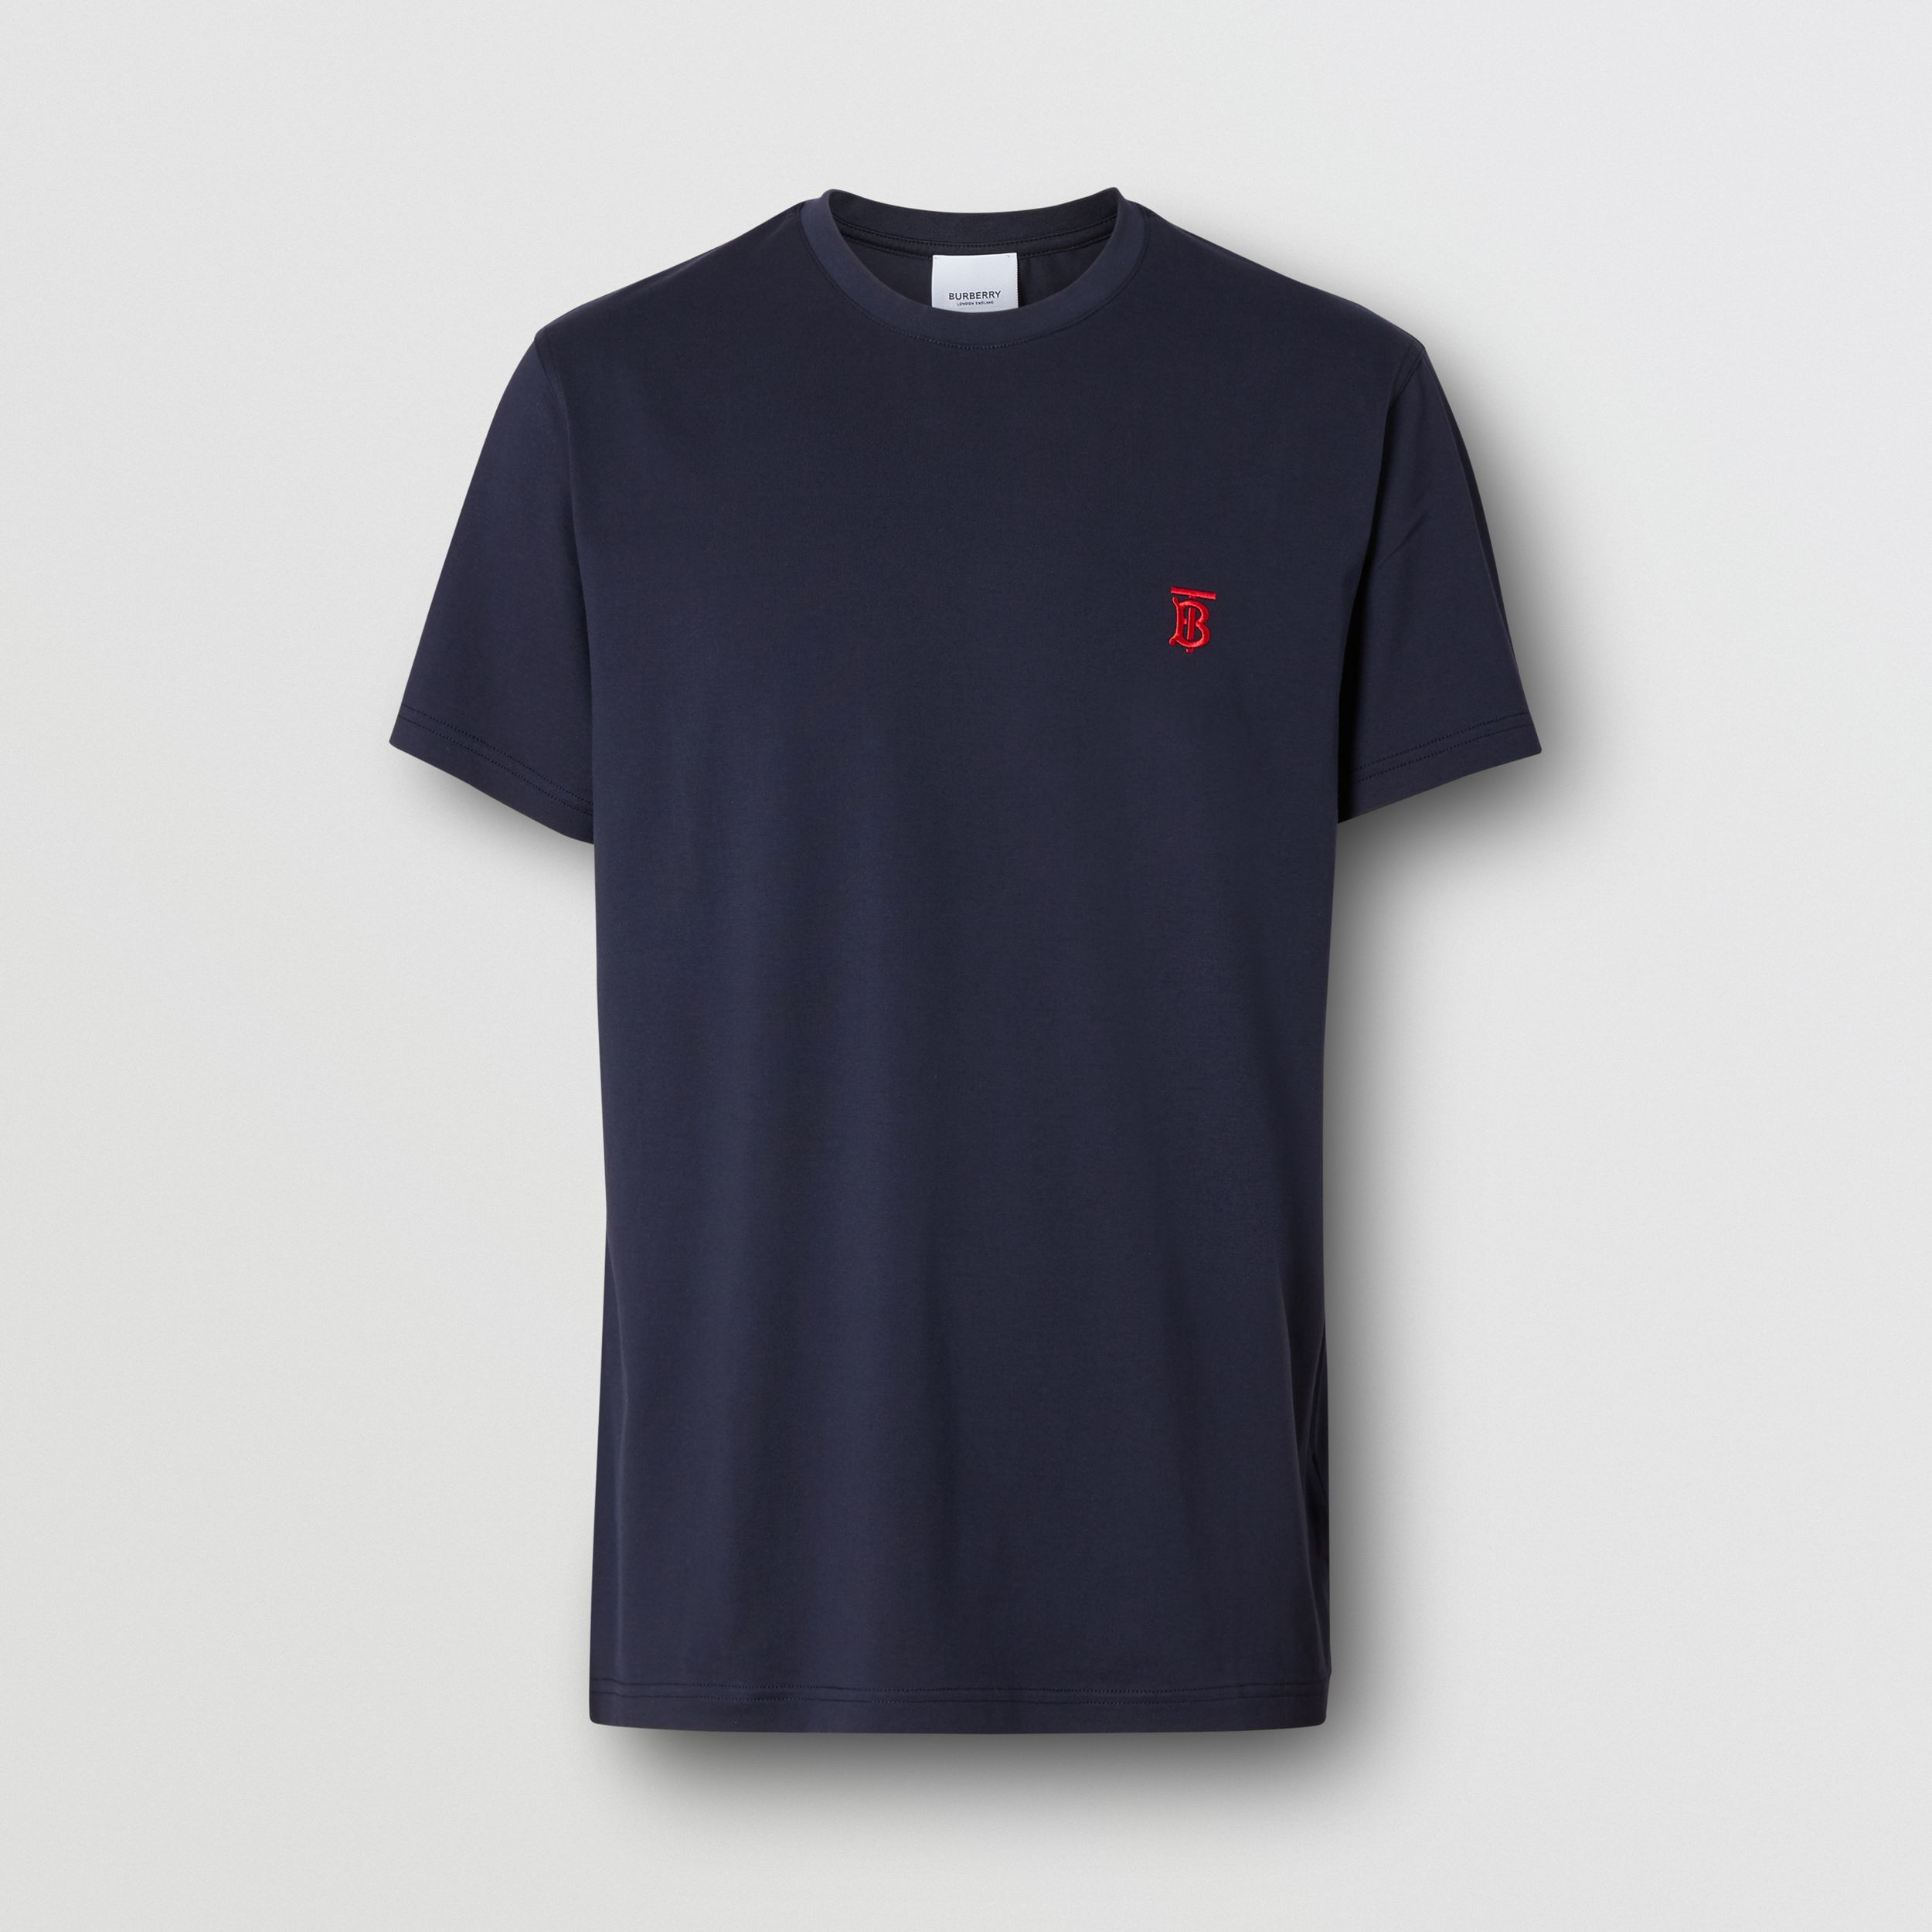 Monogram Motif Cotton T-shirt in Navy - Men | Burberry - 4